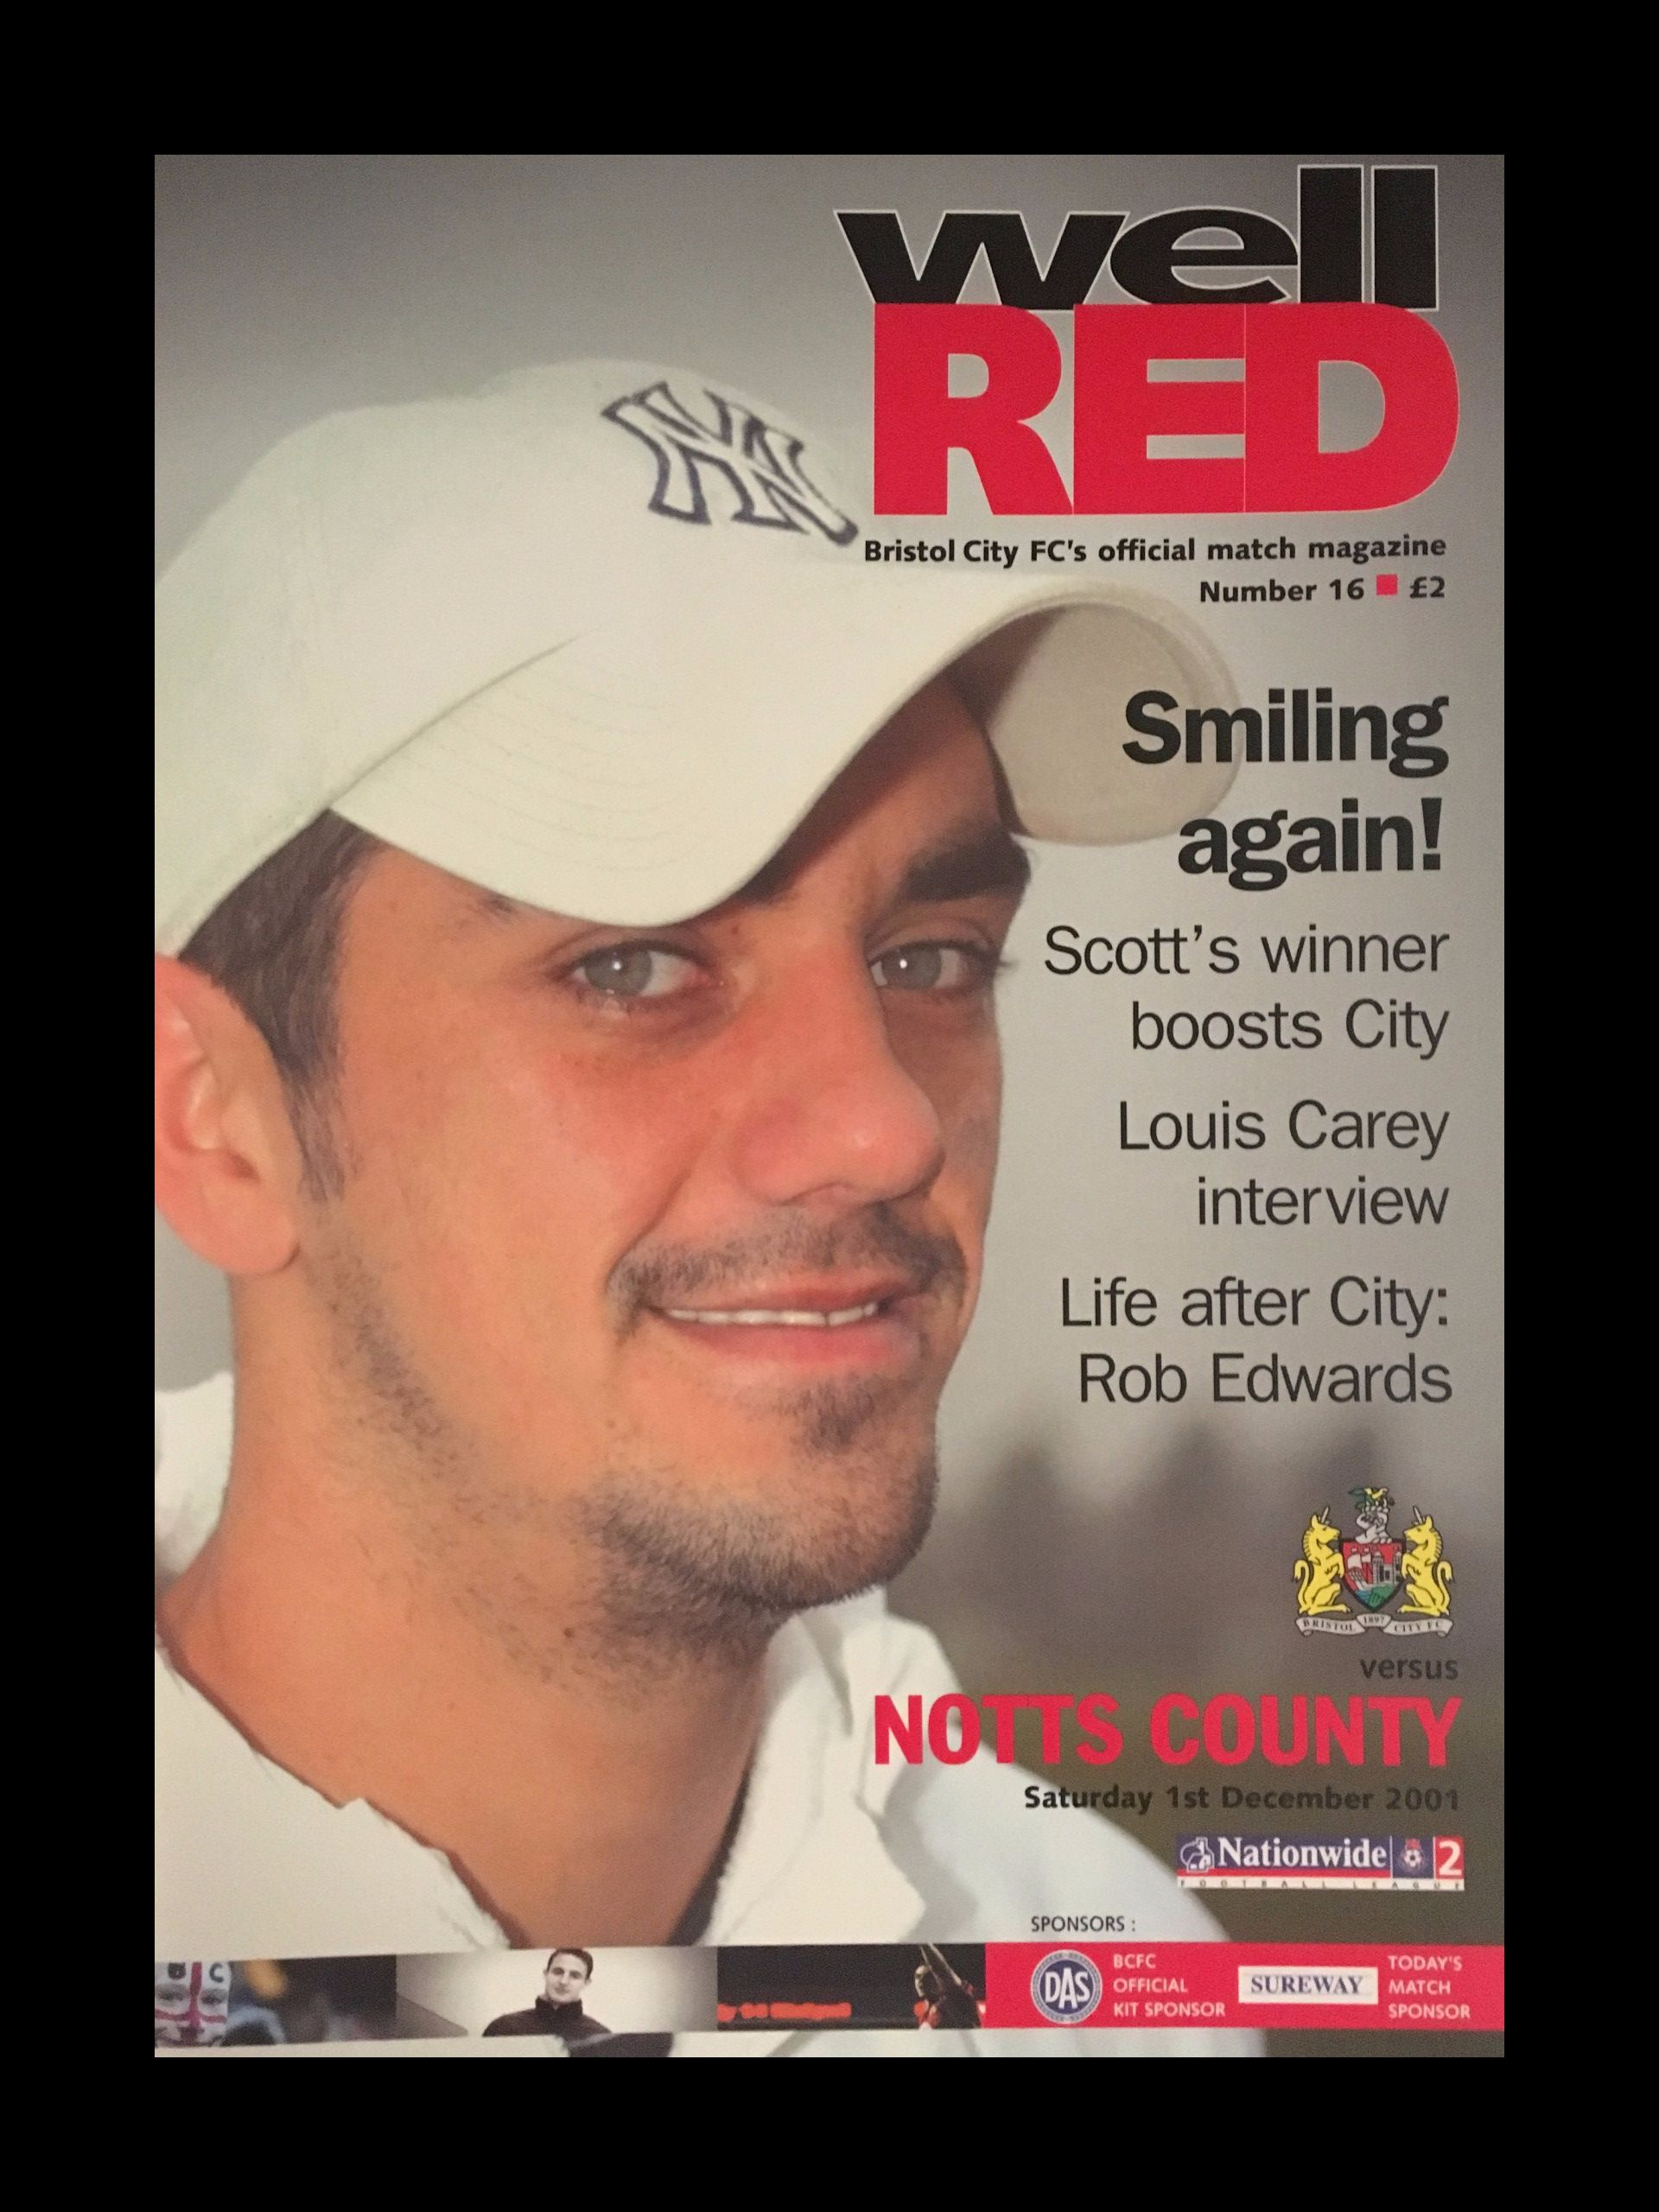 Bristol City v Notts County 01-12-2001 Programme